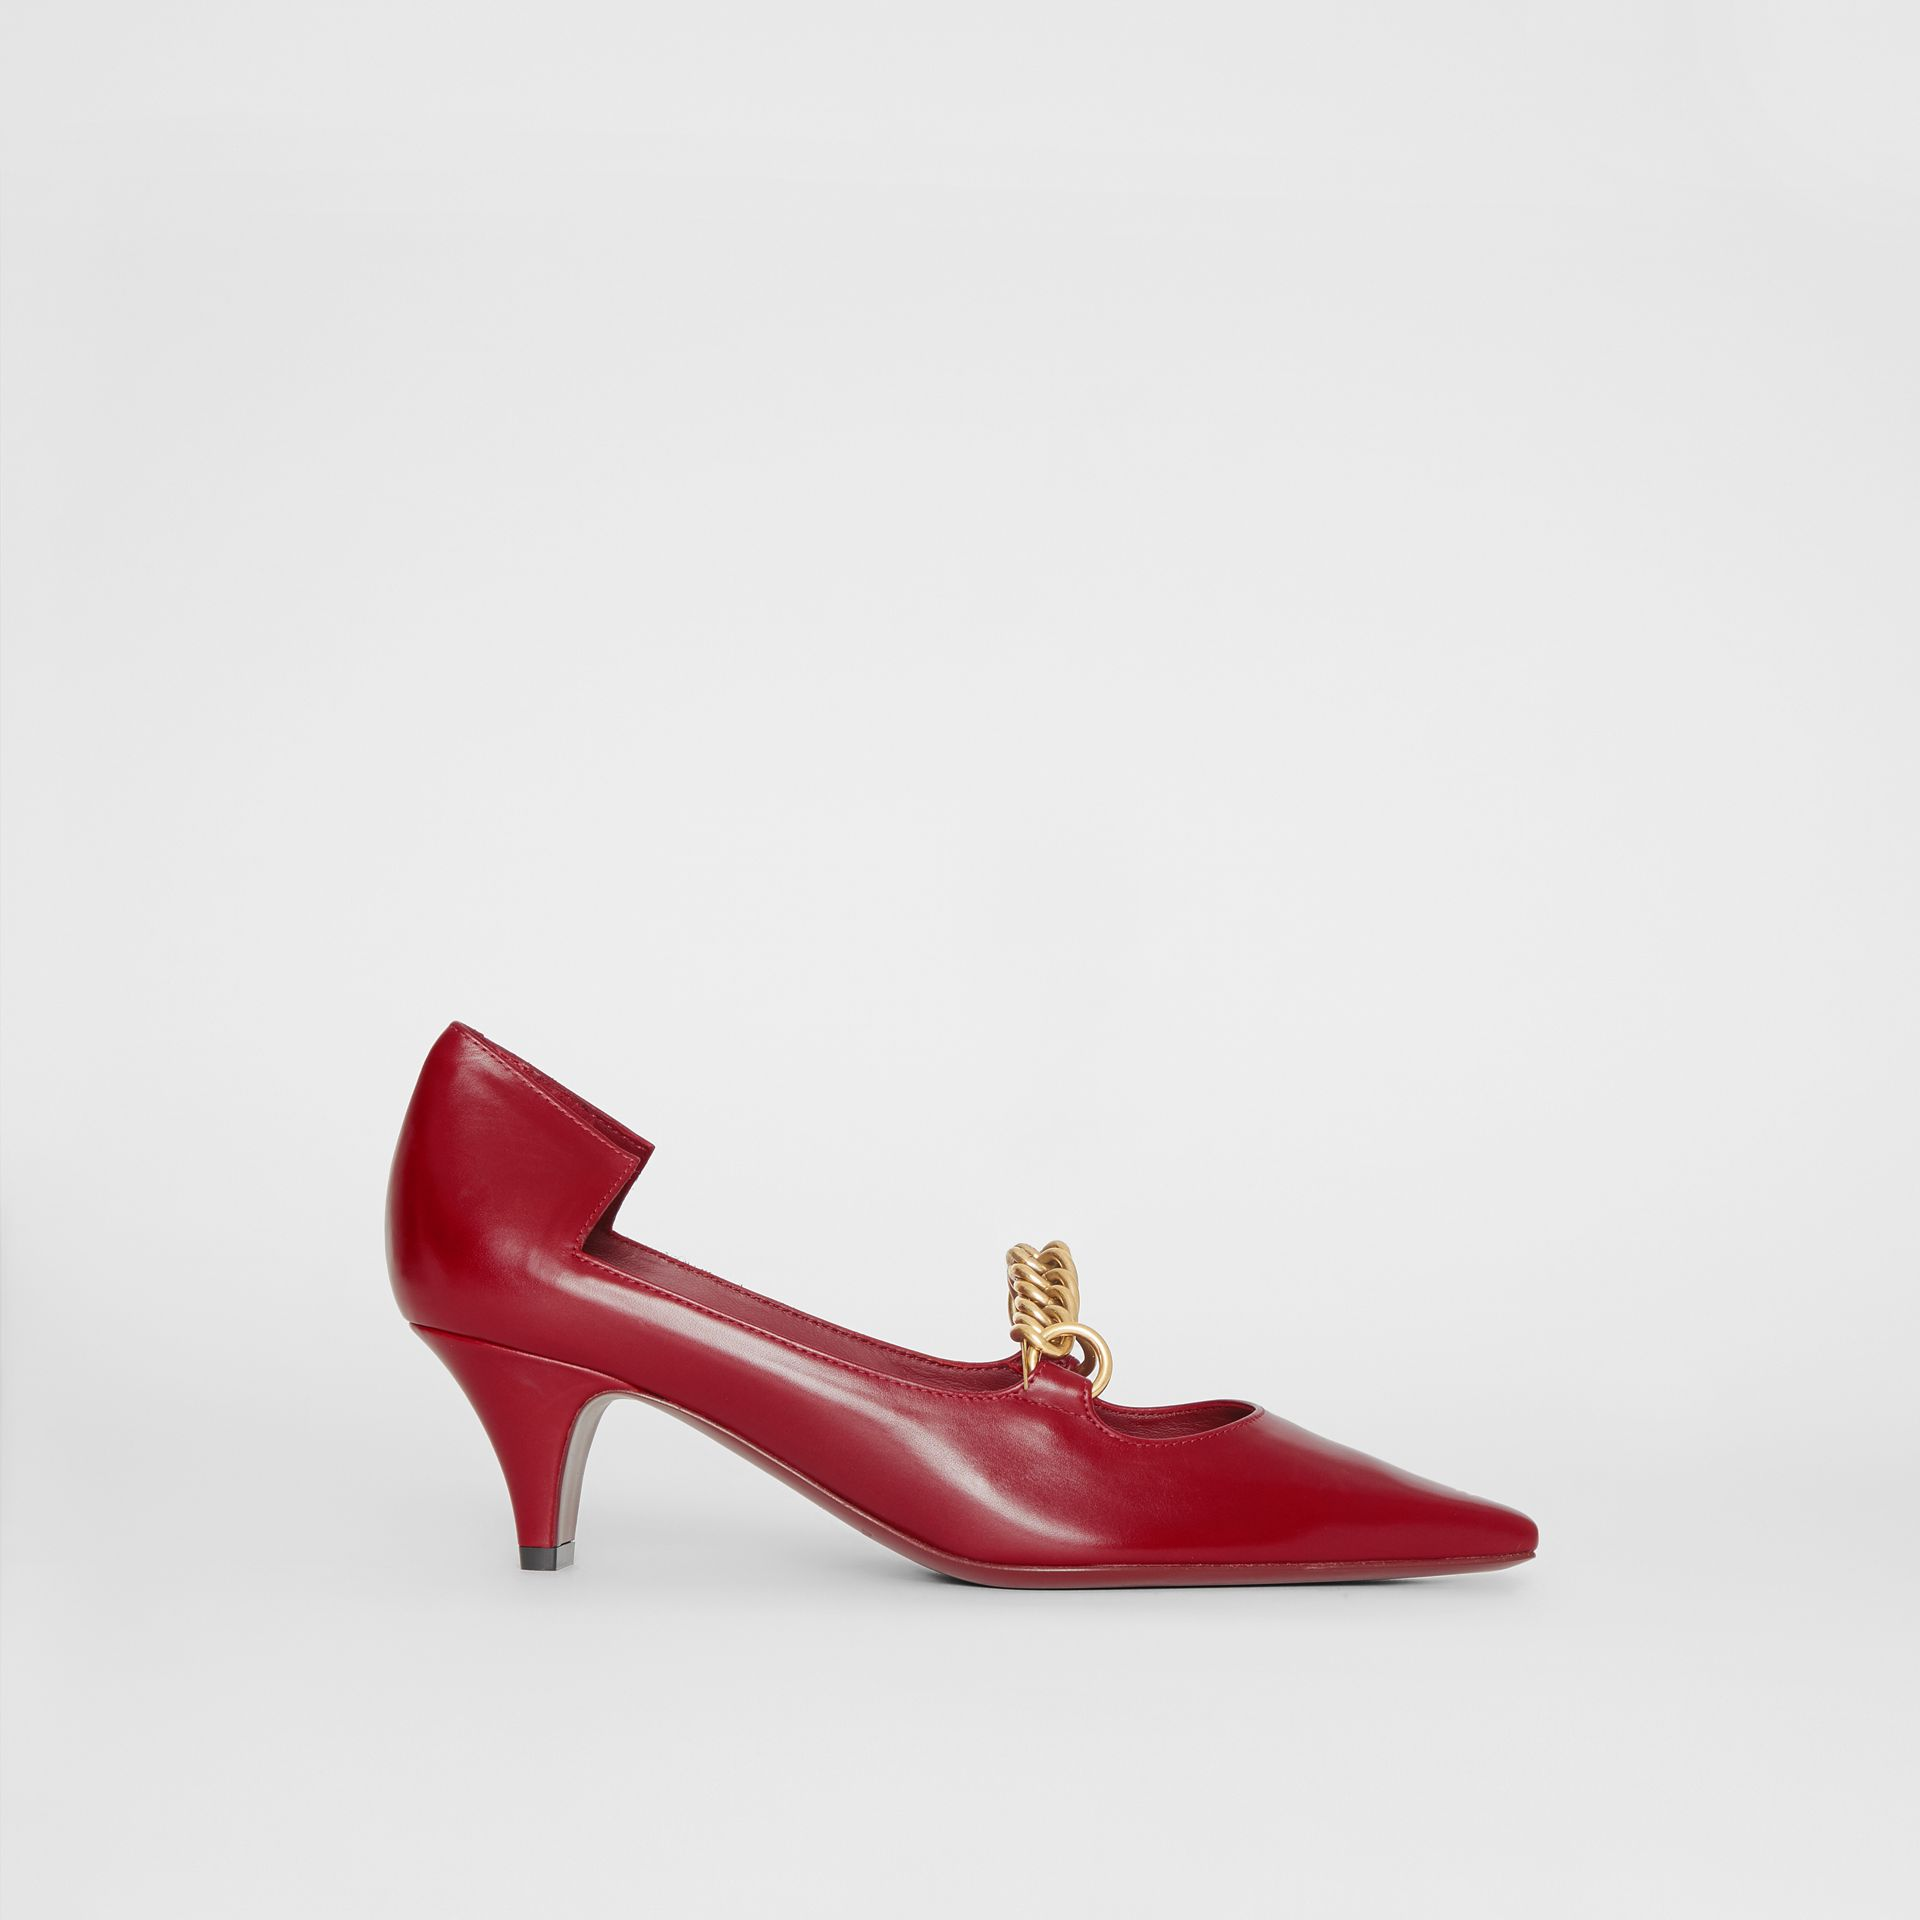 Link Detail Leather Point-toe Pump in Claret - Women | Burberry United States - gallery image 5